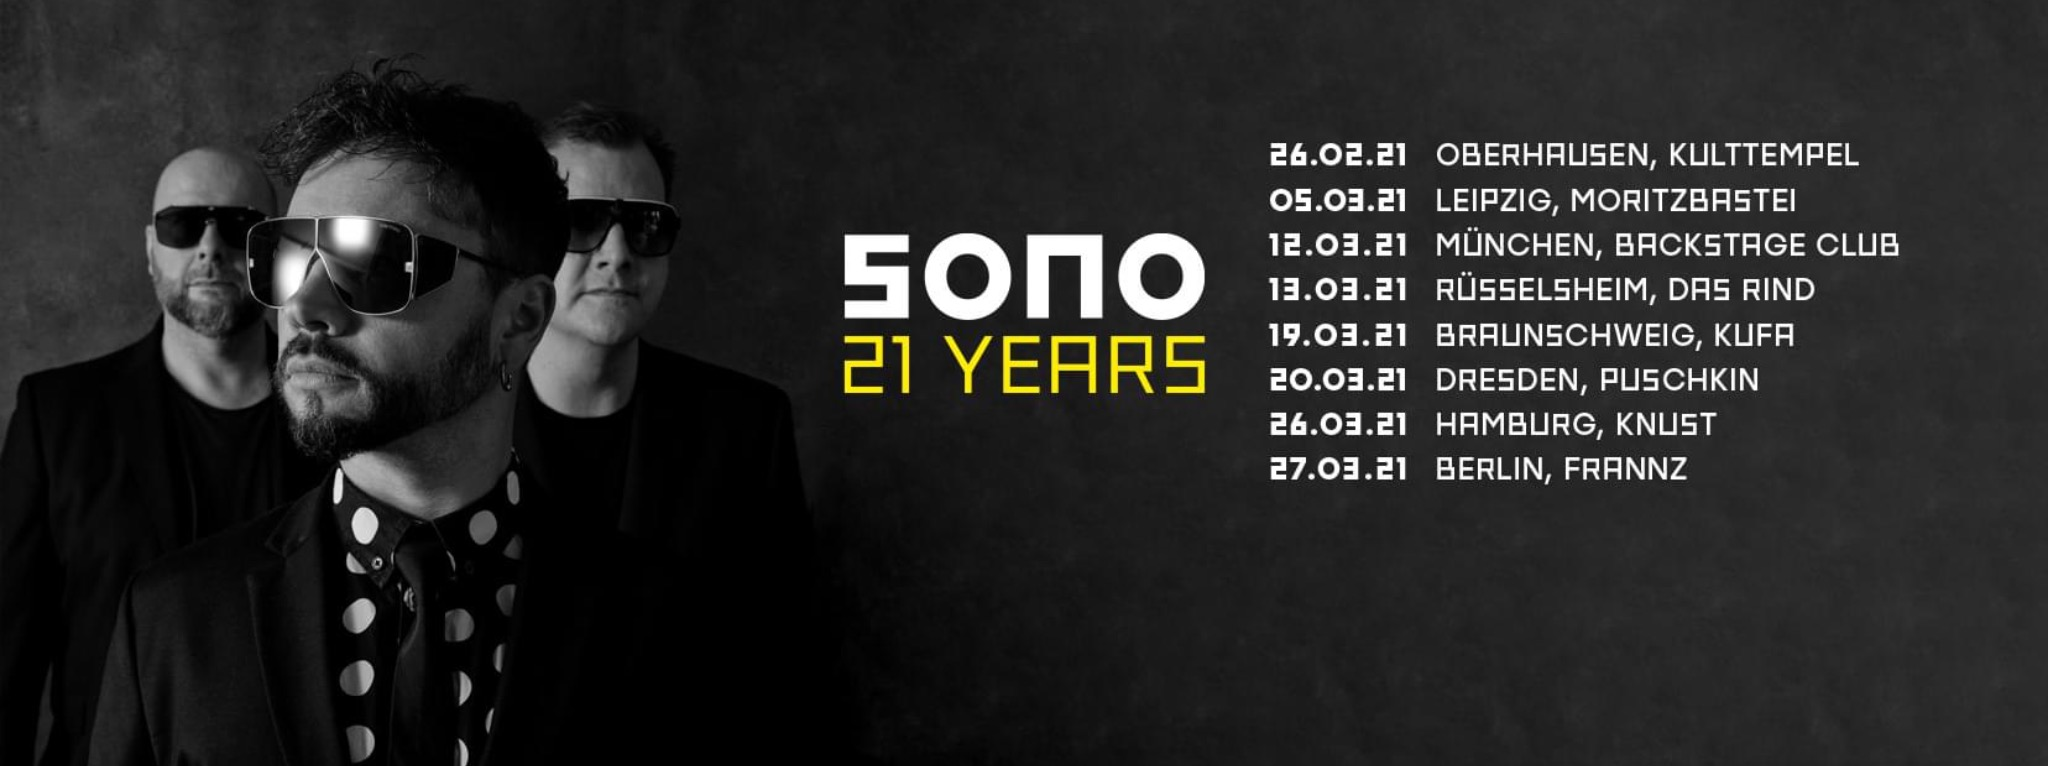 SONO - 21 Years